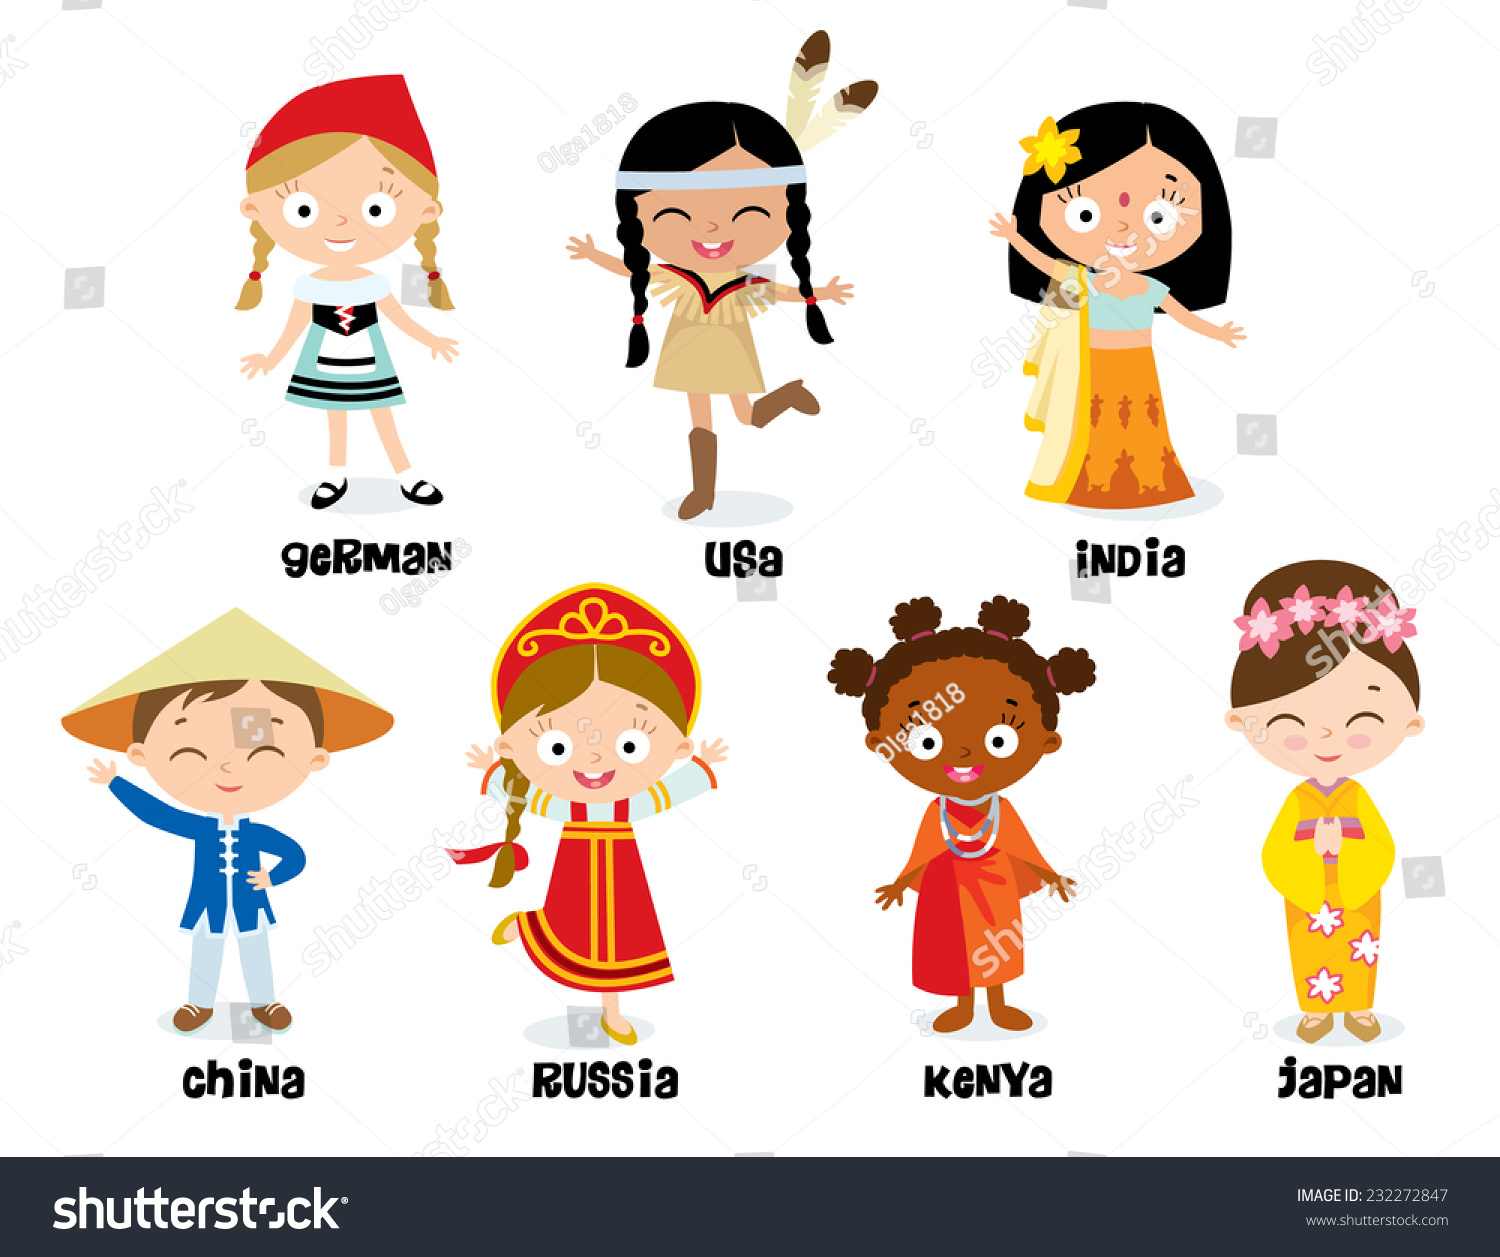 National Costumes Stock Vector 232272847 - Shutterstock